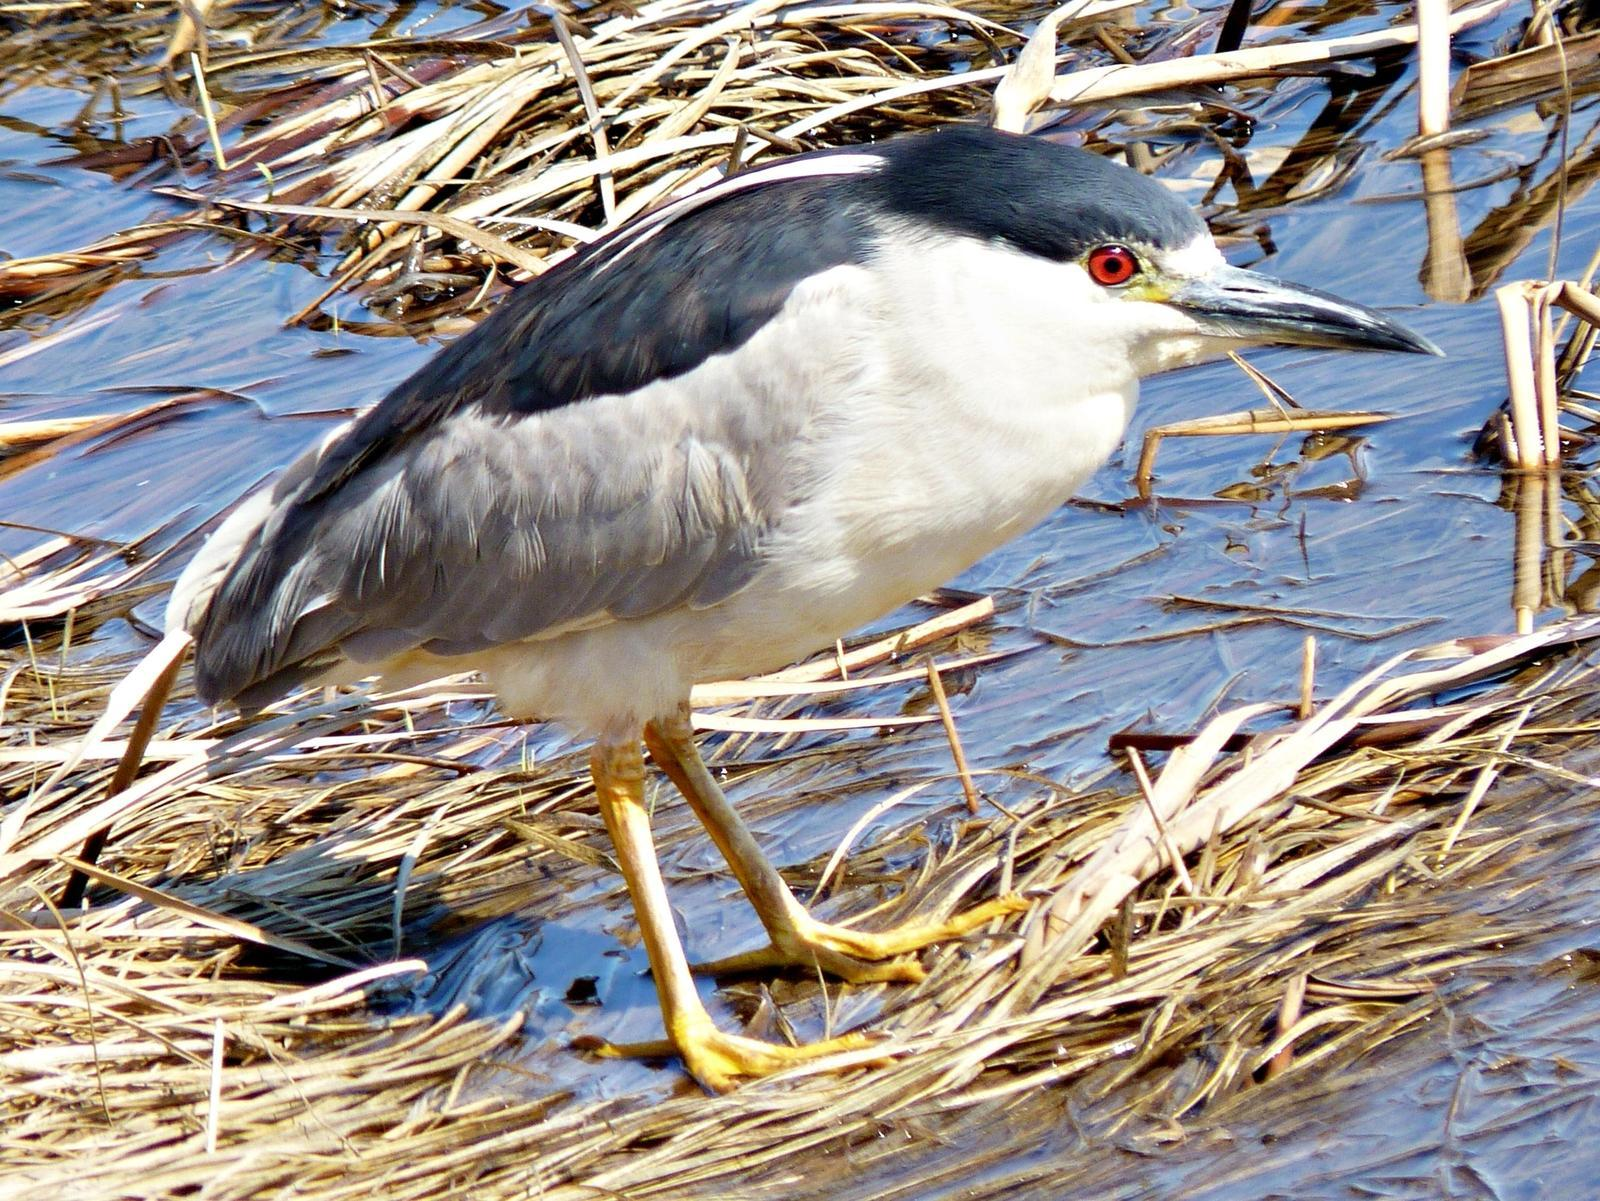 Black-crowned Night-Heron Photo by Bob Neugebauer